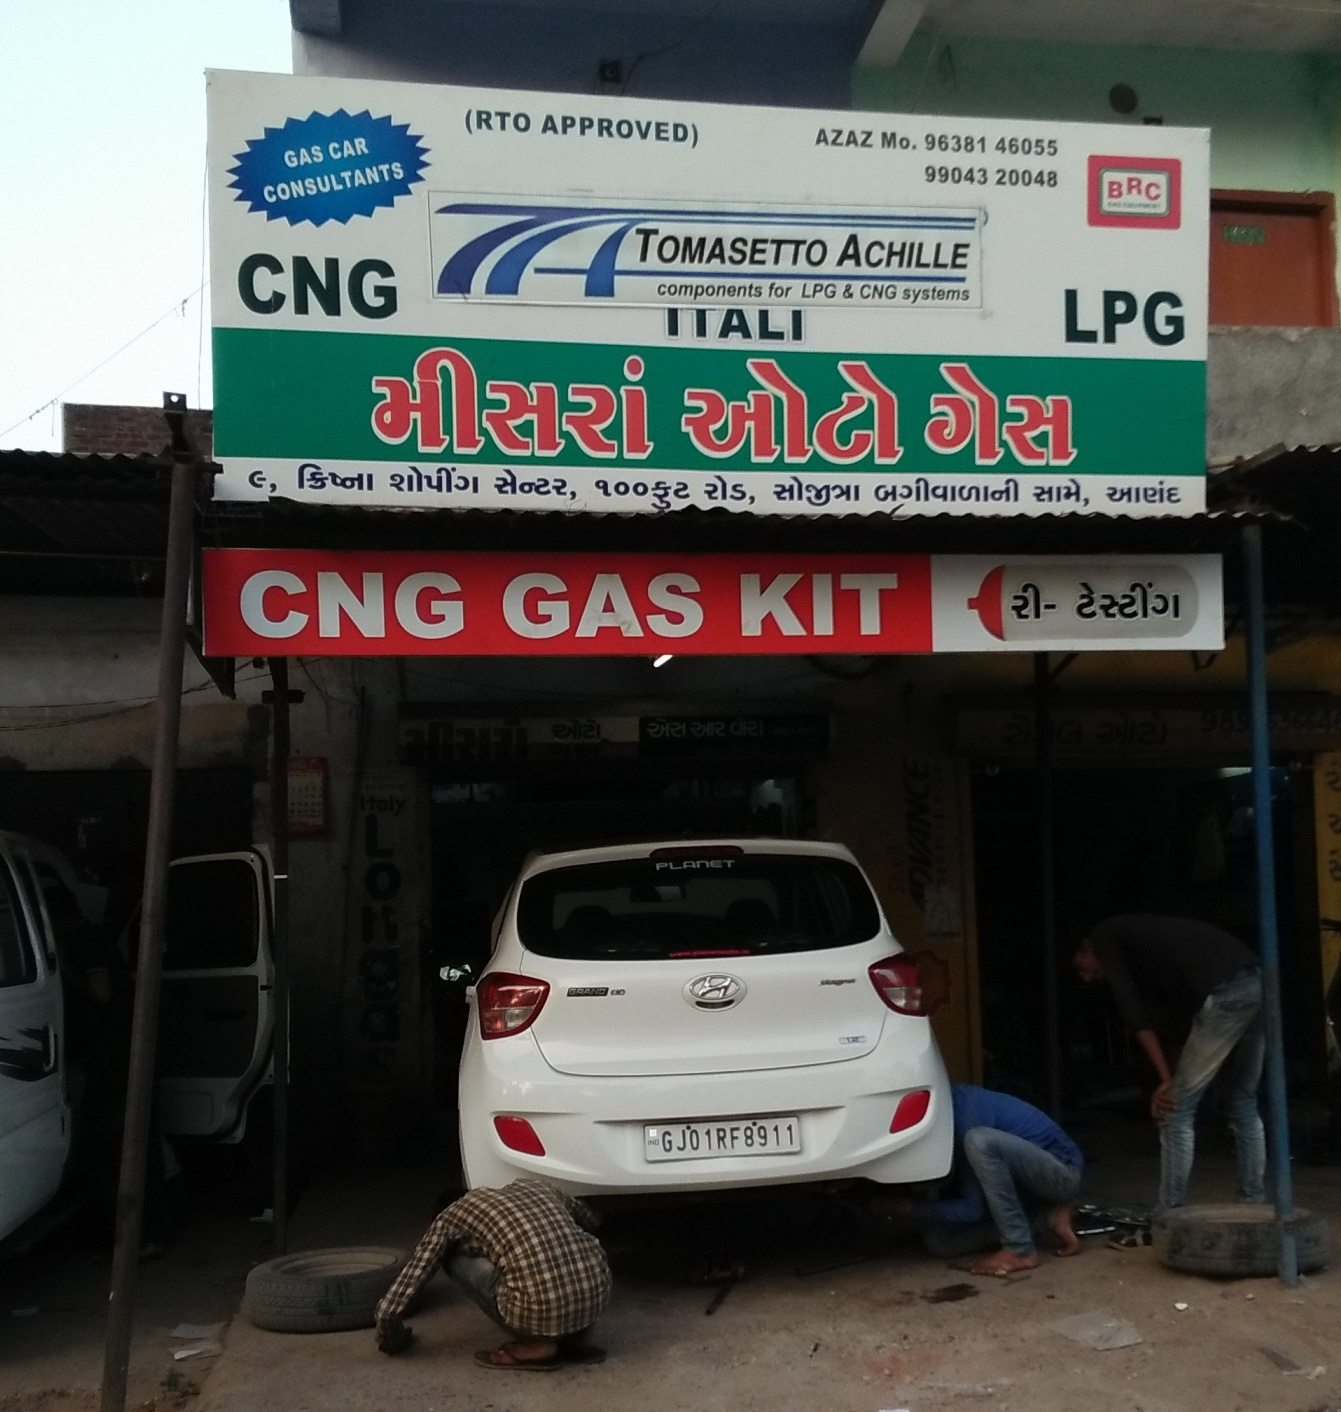 Adani Gas hikes CNG, PNG prices - The Hindu BusinessLine